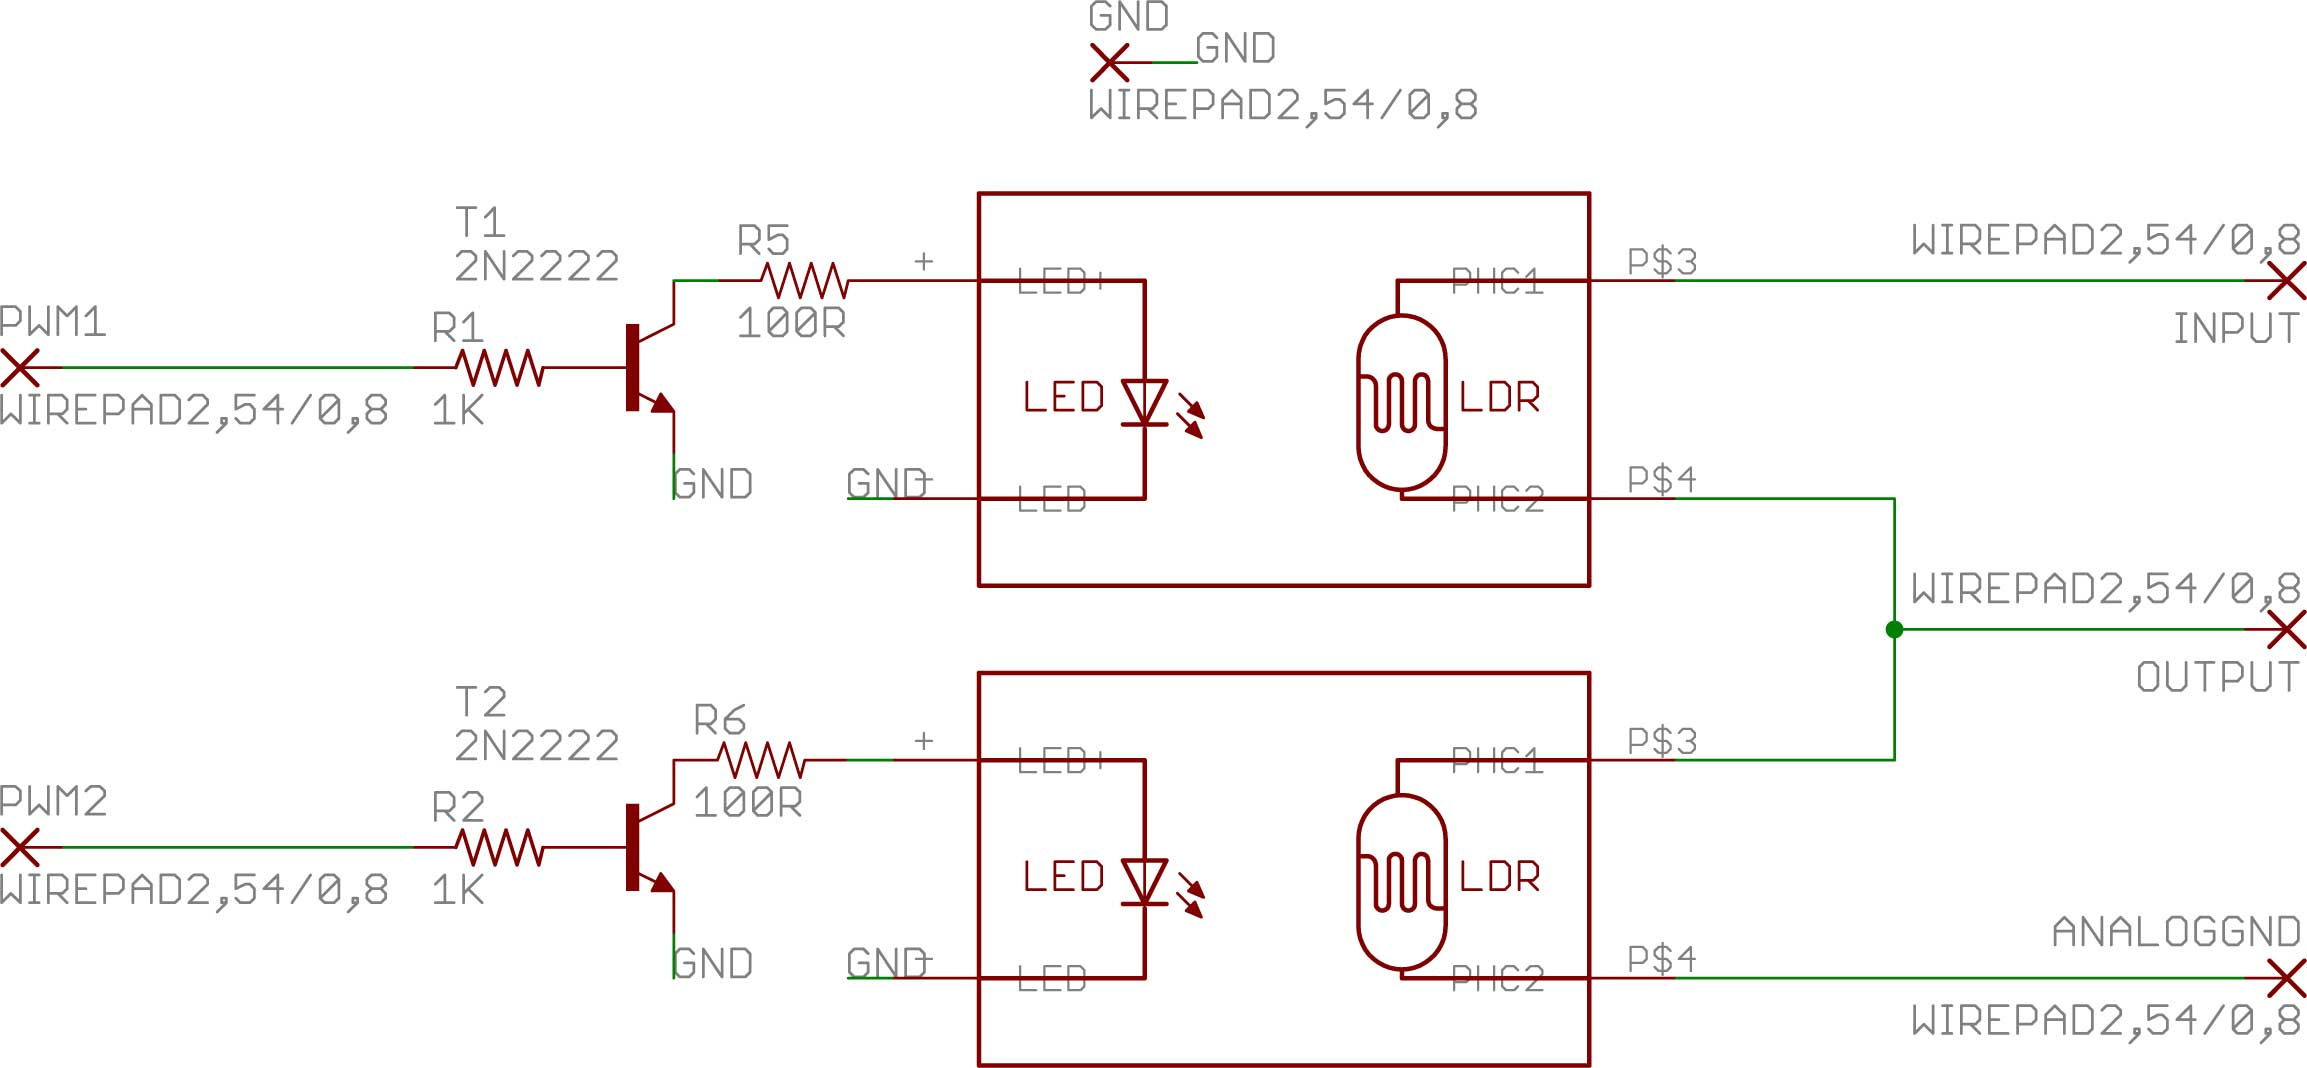 How To Control Volume Of Speakers With Arduino Now Digital Lowpower Amplifier Amp Circuit Diagram Potentiometer